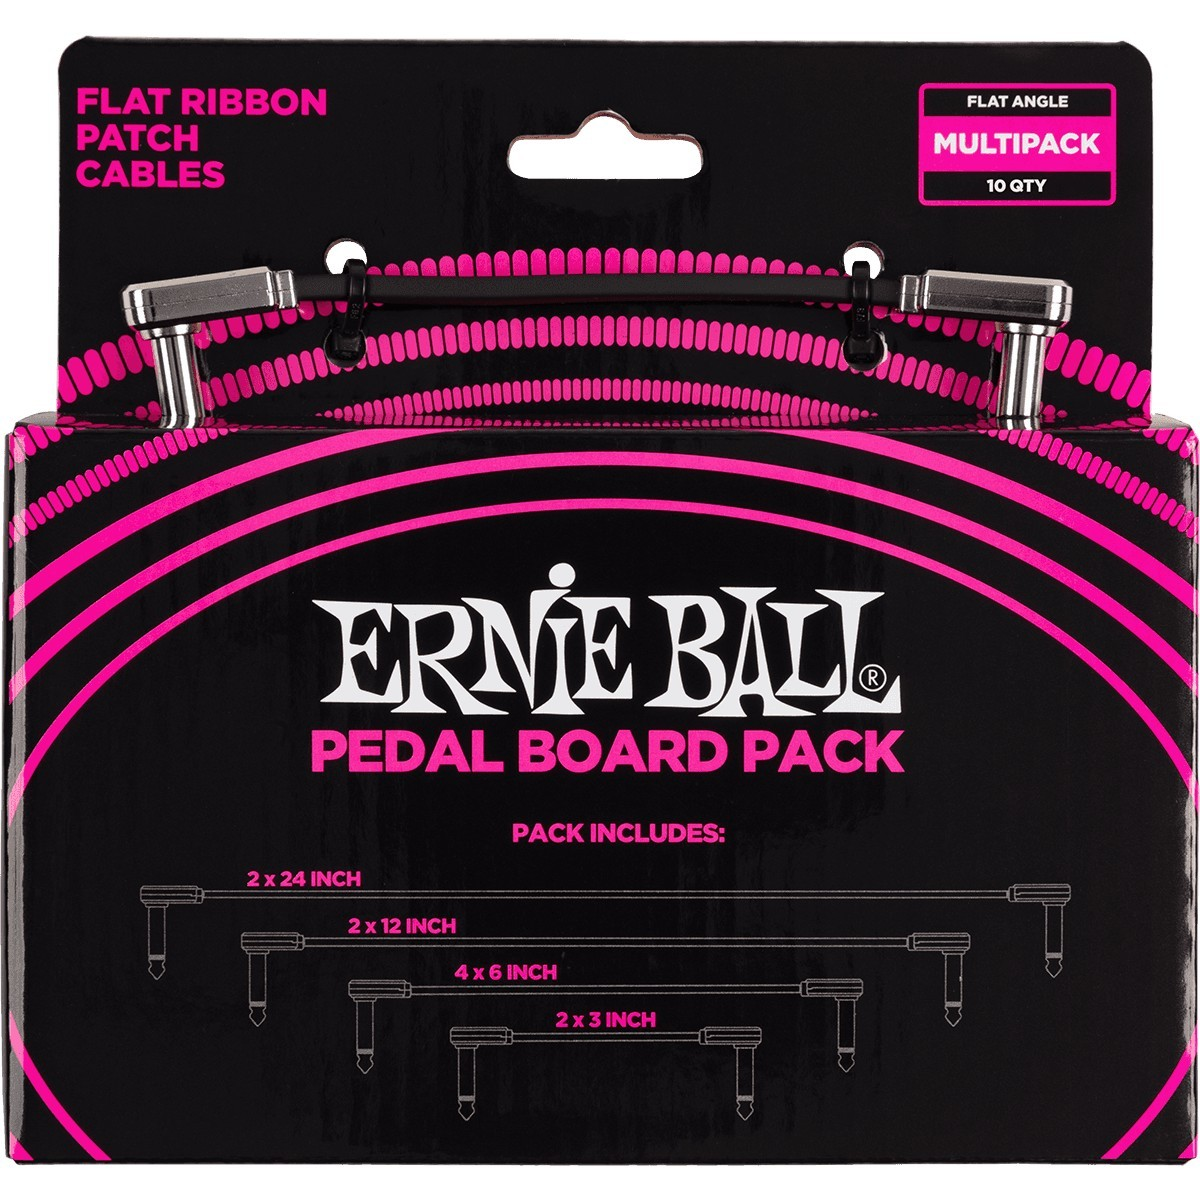 ERNIE BALL Cable Instrument Patch Flat Ribbon